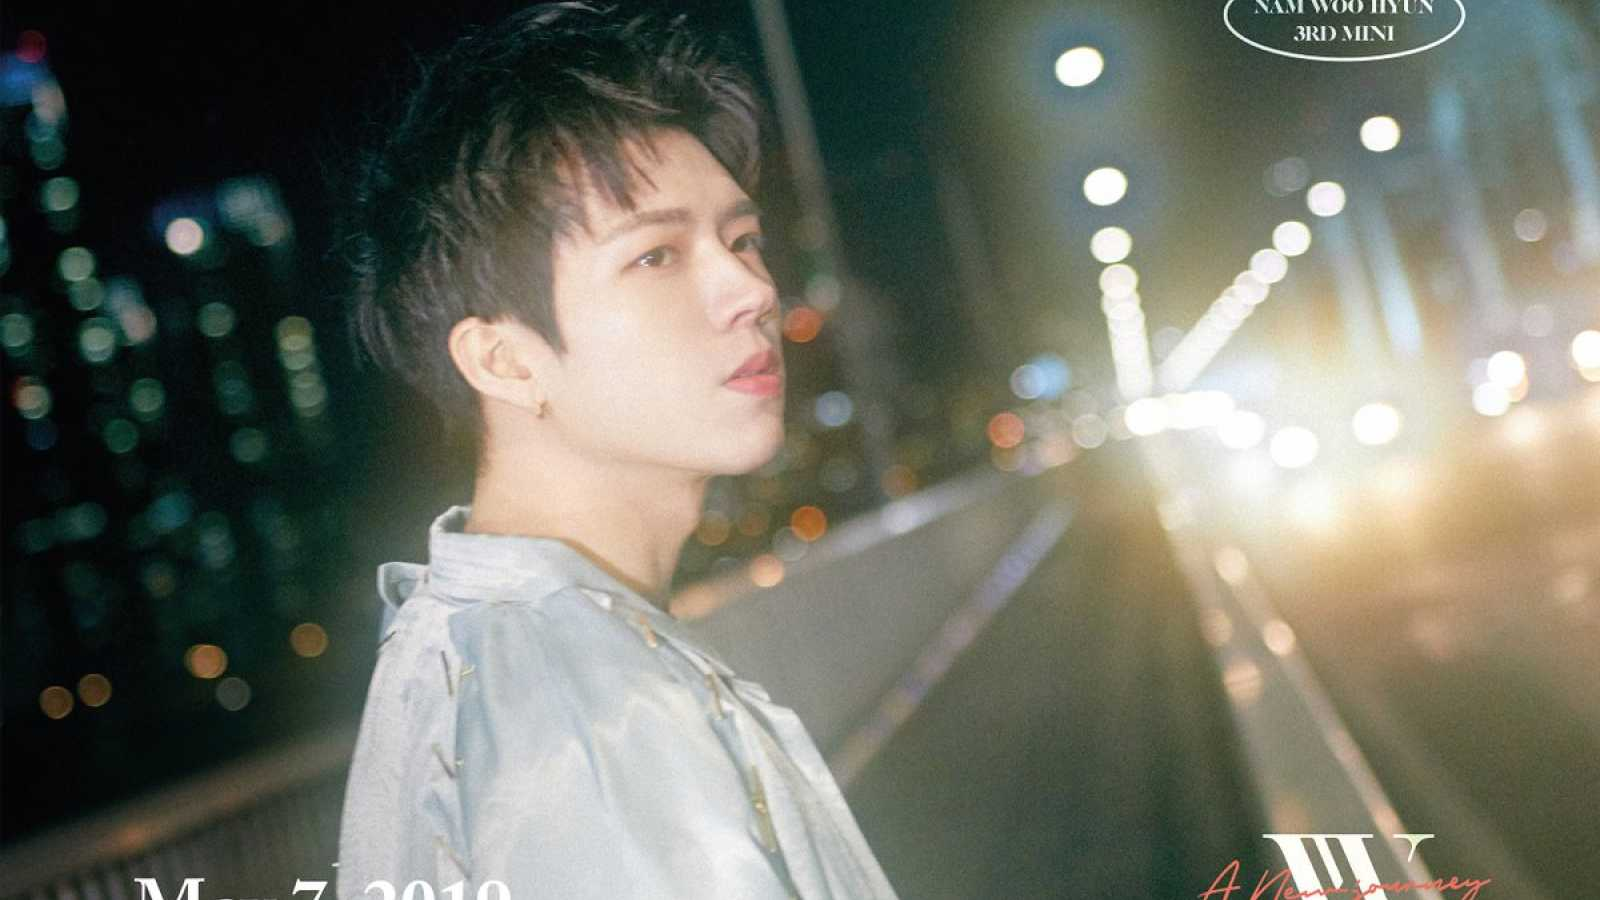 Woo Hyun © Woolim Entertainment. All rights reserved